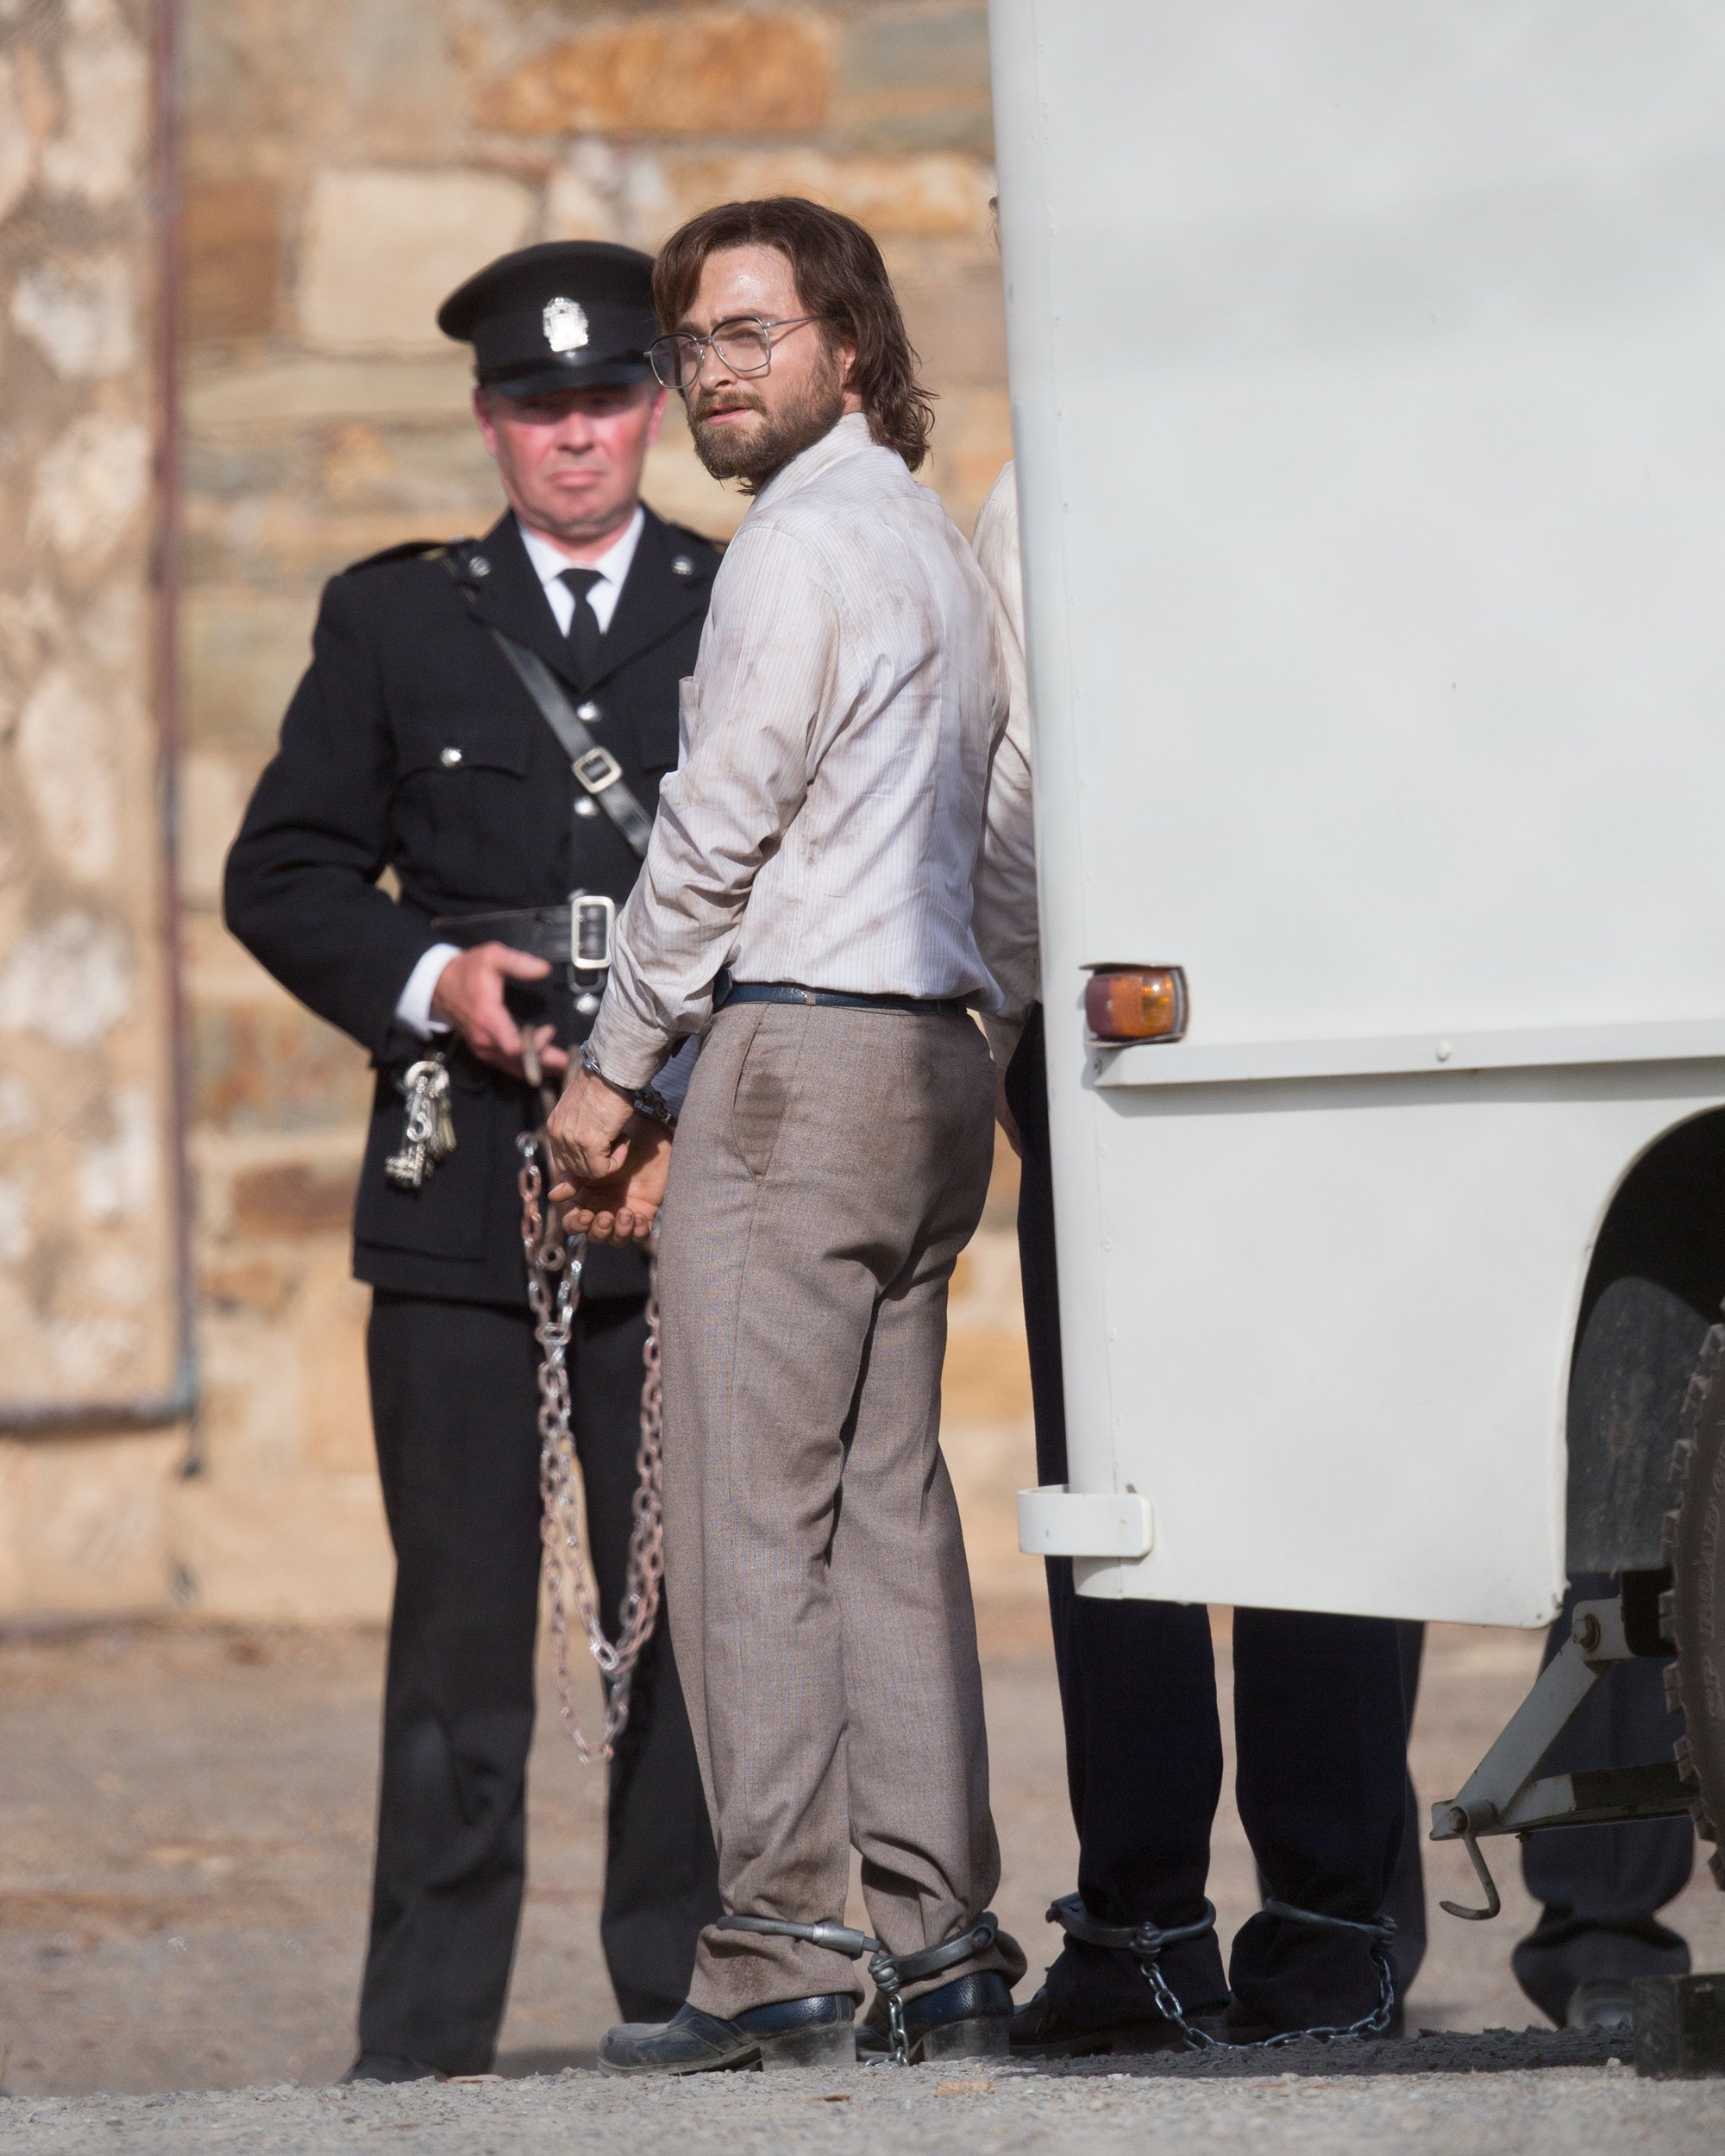 """EXCLUSIVE: Daniel Radcliffe was looking worse for wear as he got into character for filming of """"Escape from Pretoria"""" in Adelaide. Daniel was looking scruffy as he wore a very dirty business shirt tucked into his pants with a tie and grey pants with a pair of eye glasses. His co-star had a bloodied face. The filming took place at the old Adelaide Gaol which has been transformed into Pretoria prison for filming. Daniel and his co-star in the scene were shackled as they exited a white van and were met by many officers. Daniel's character had his legs shackled as well as his hands in parts of the scene. It's a far different look from the boy who was once Harry Potter. Filming will continue over the next few weeks in Adelaide. 11 Mar 2019 Pictured: Daniel Radcliffe. Photo credit: MEGA TheMegaAgency.com +1 888 505 6342 (Mega Agency TagID: MEGA378145_001.jpg) [Photo via Mega Agency]"""